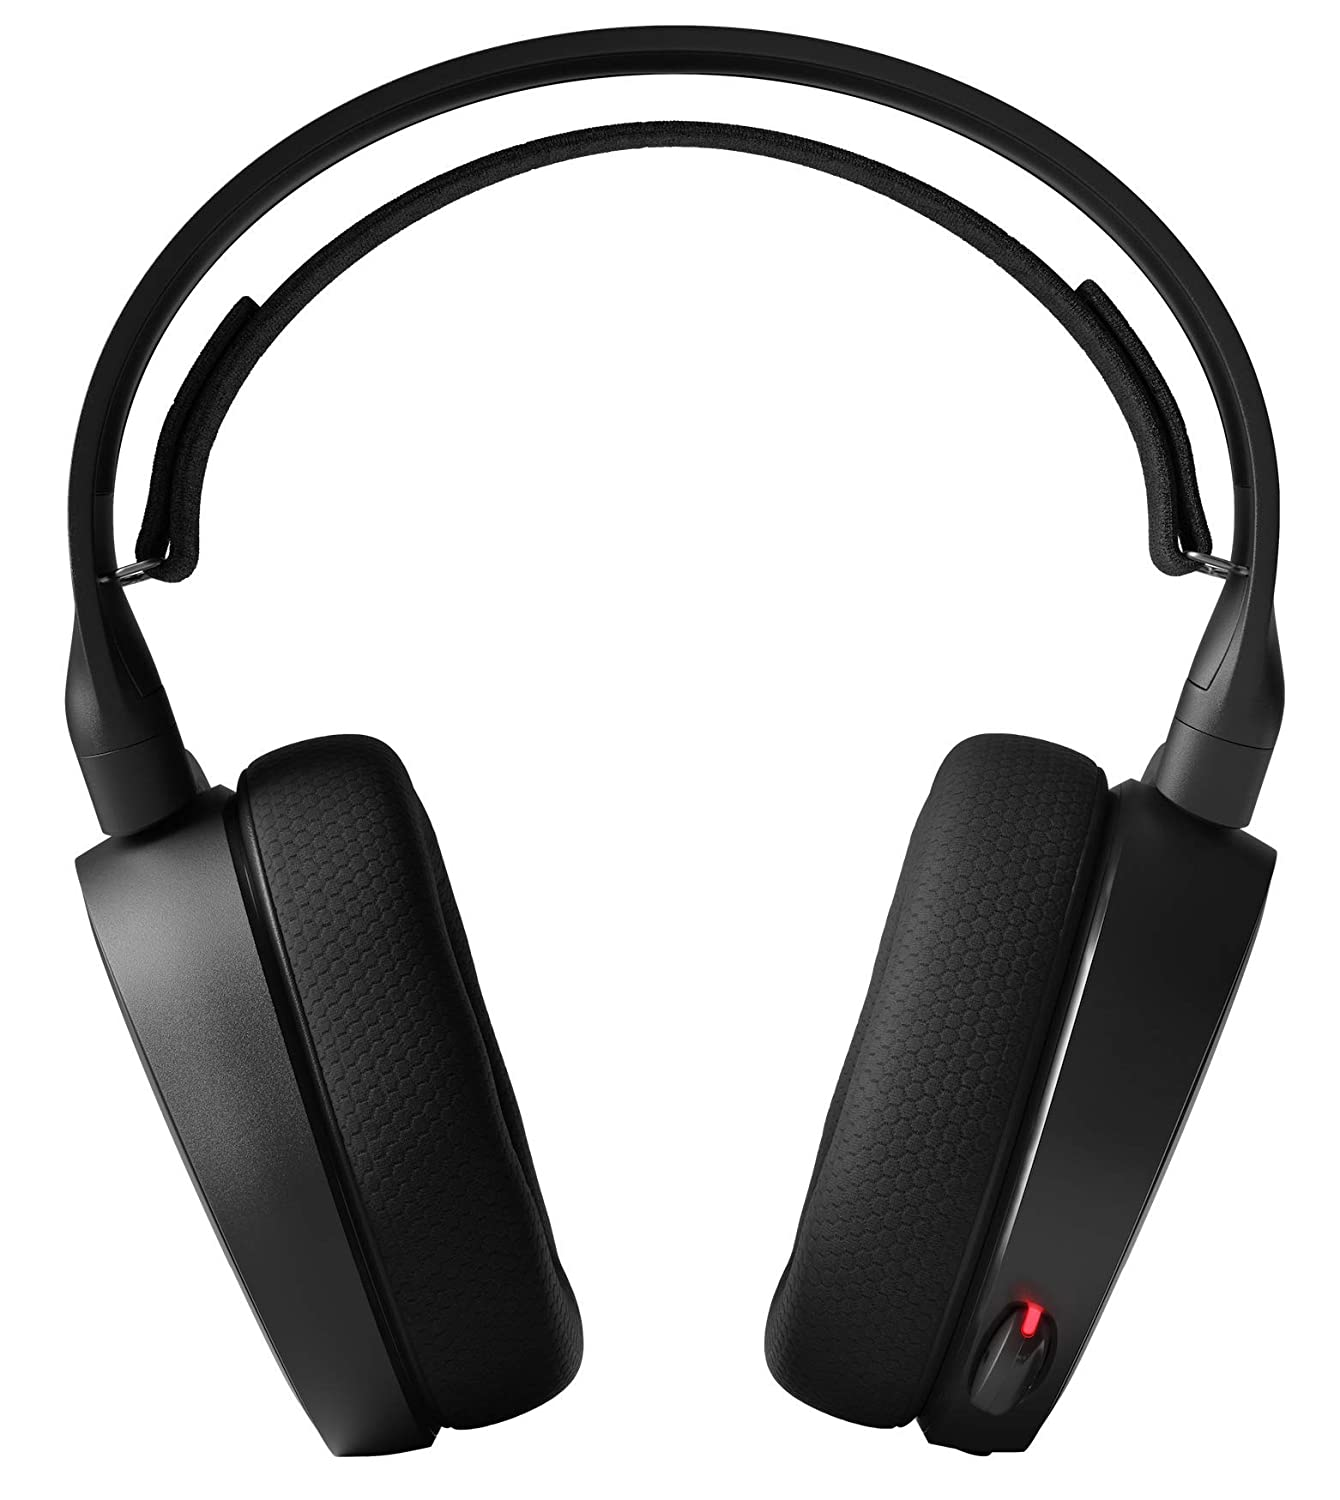 SteelSeries Arctis 5 Black For PC and PlayStation 4 RGB Illuminated Gaming Headset with DTS Headphone:X v2.0 Surround